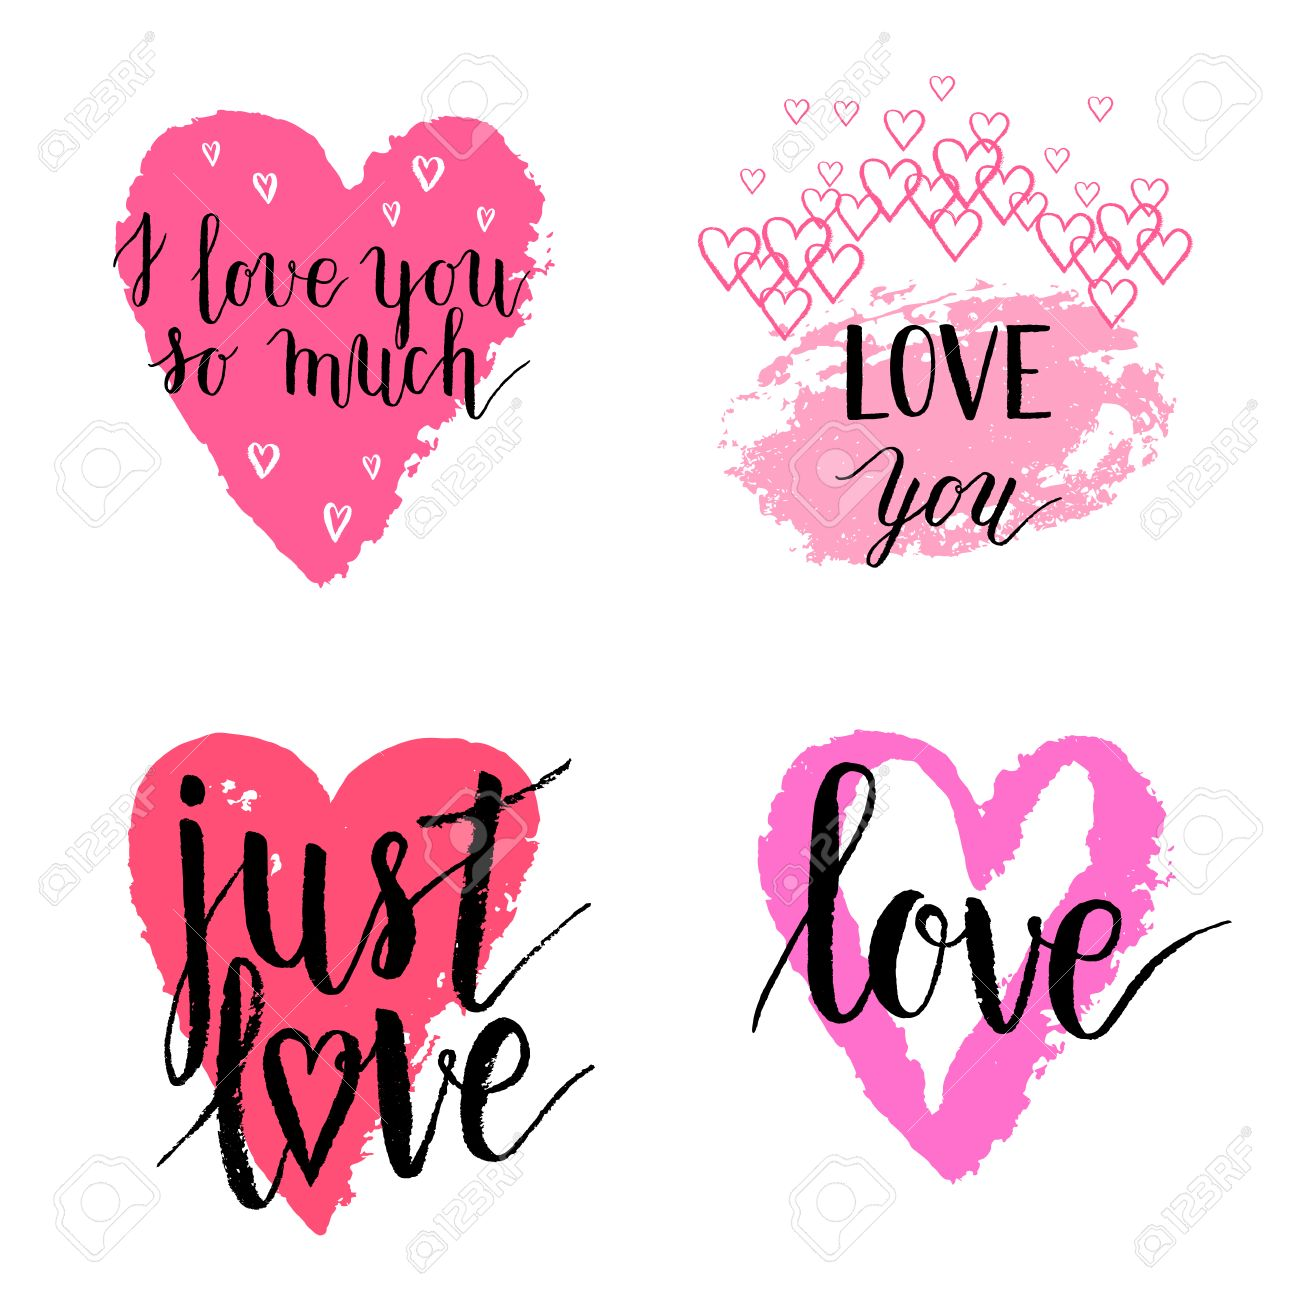 I love you so much just love greeting cards posters set with ink i love you so much just love greeting cards posters set with ink hand m4hsunfo